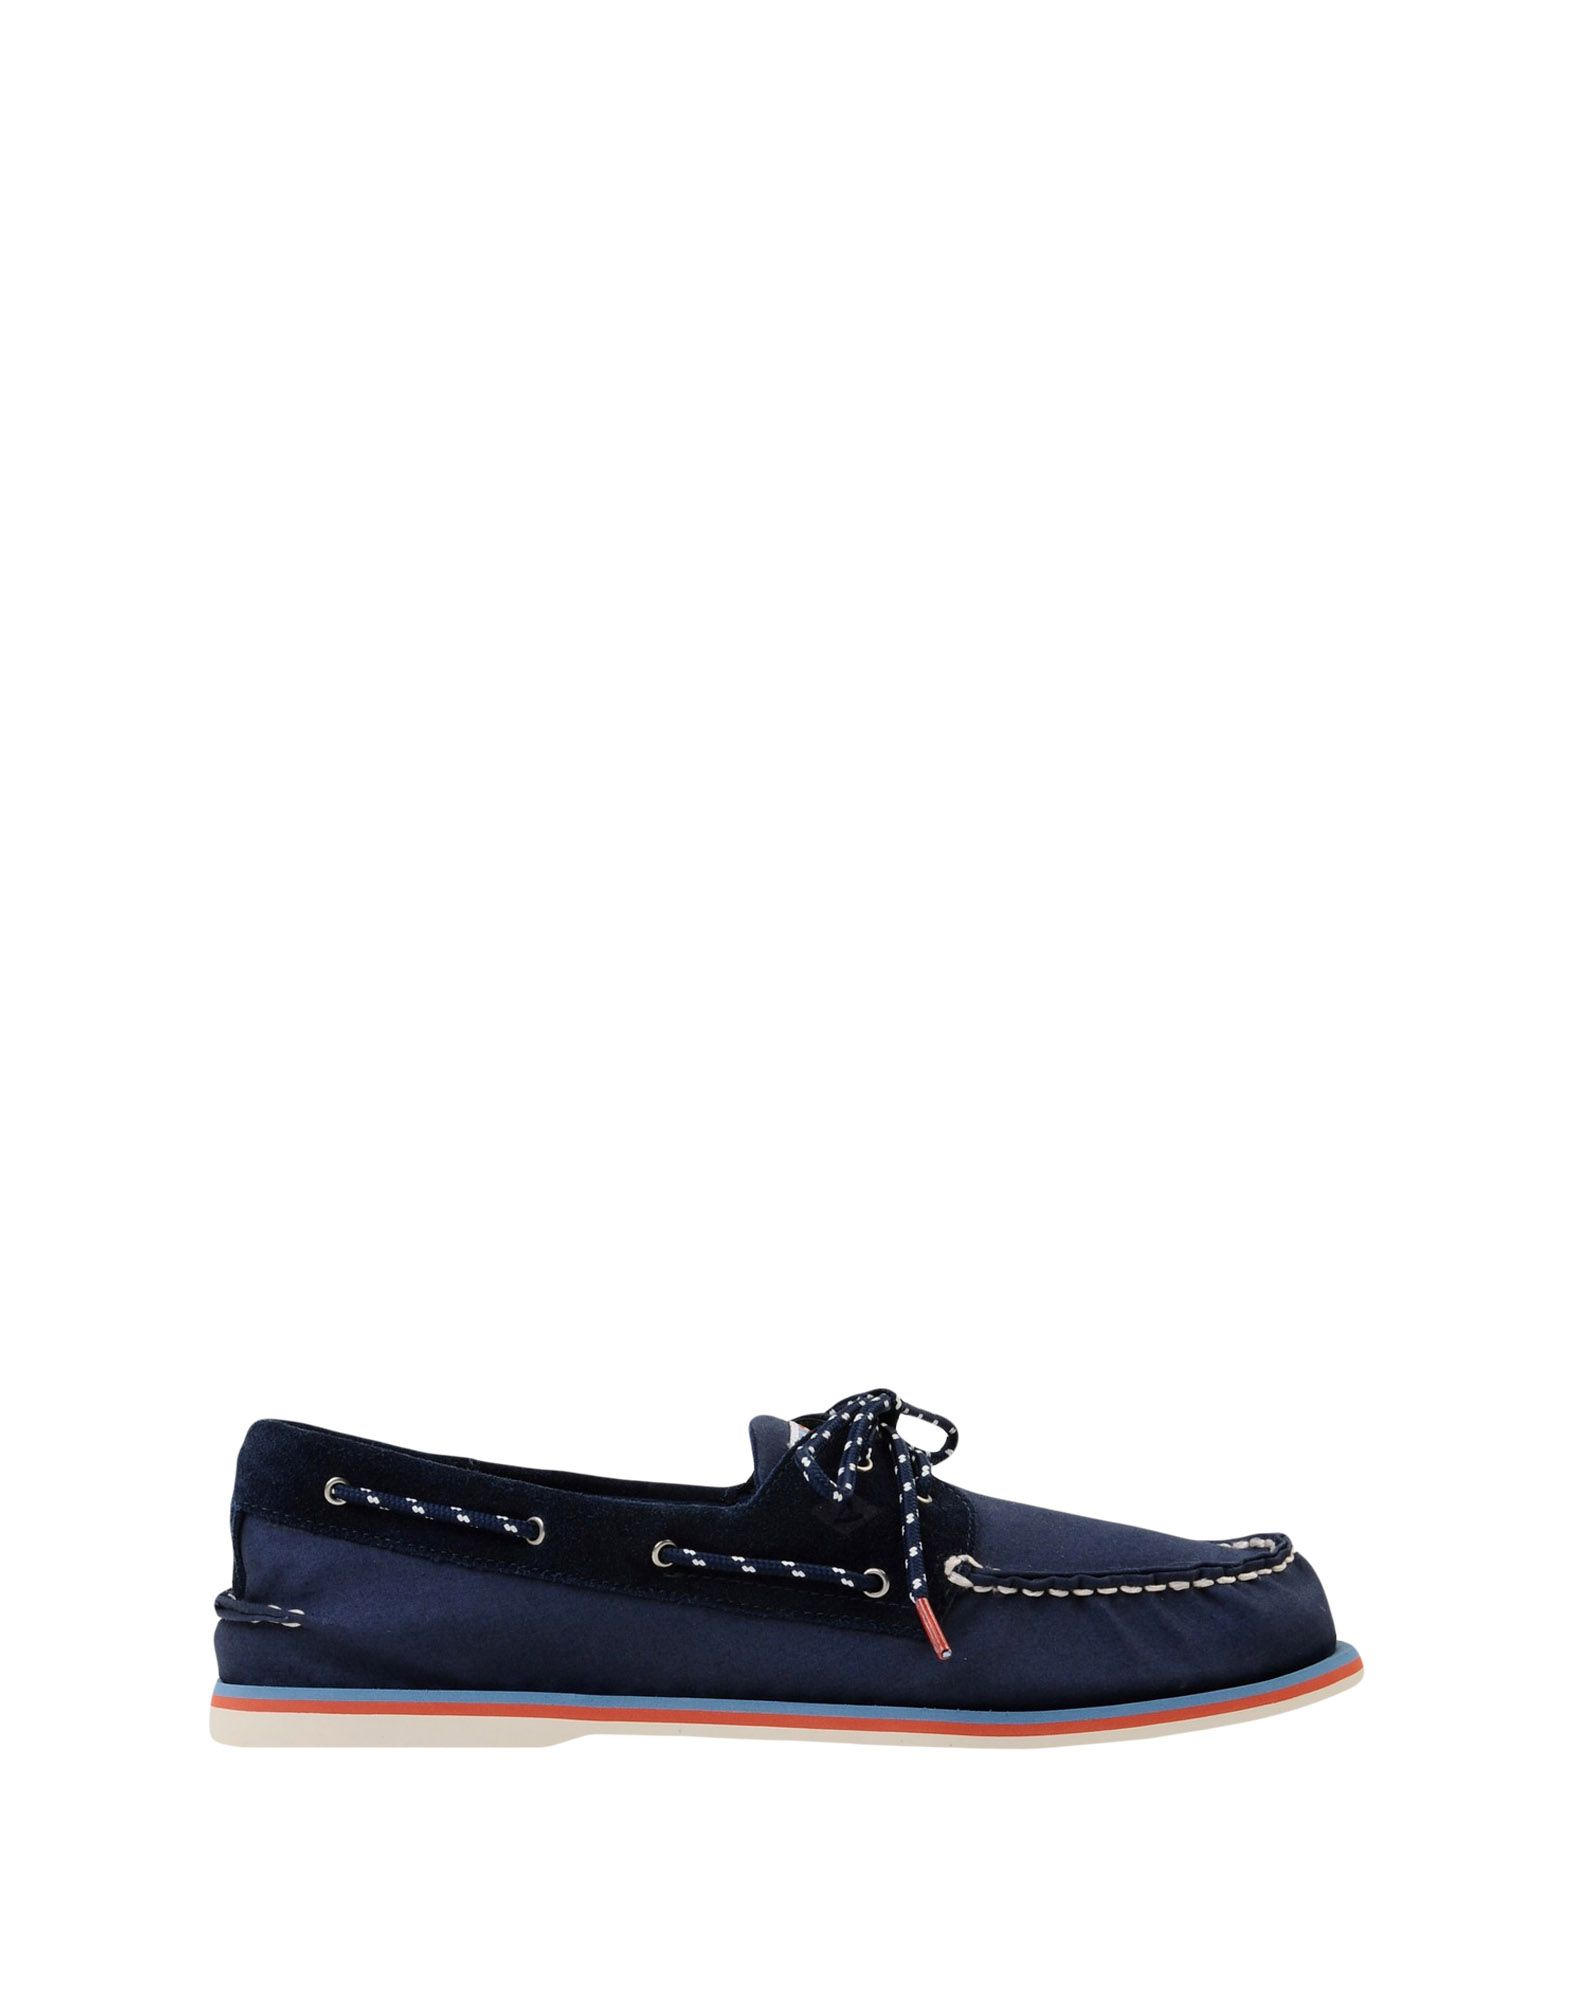 A/O 2-Eye Nautical - CHAUSSURES - MocassinsSperry Top-Sider 9Thp0oxwn